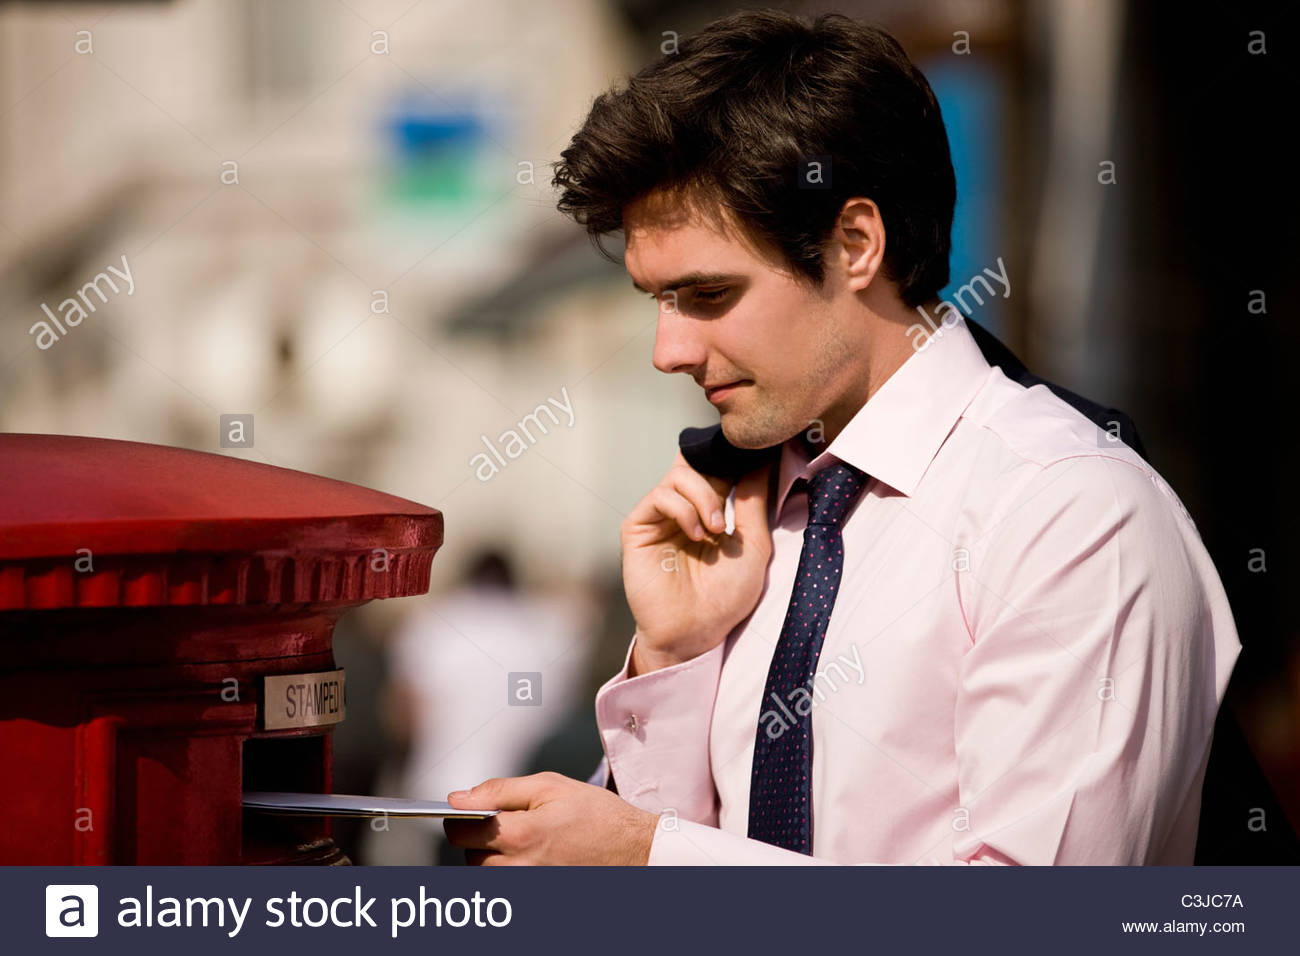 A businessman posting letters in a letterbox - Stock Image